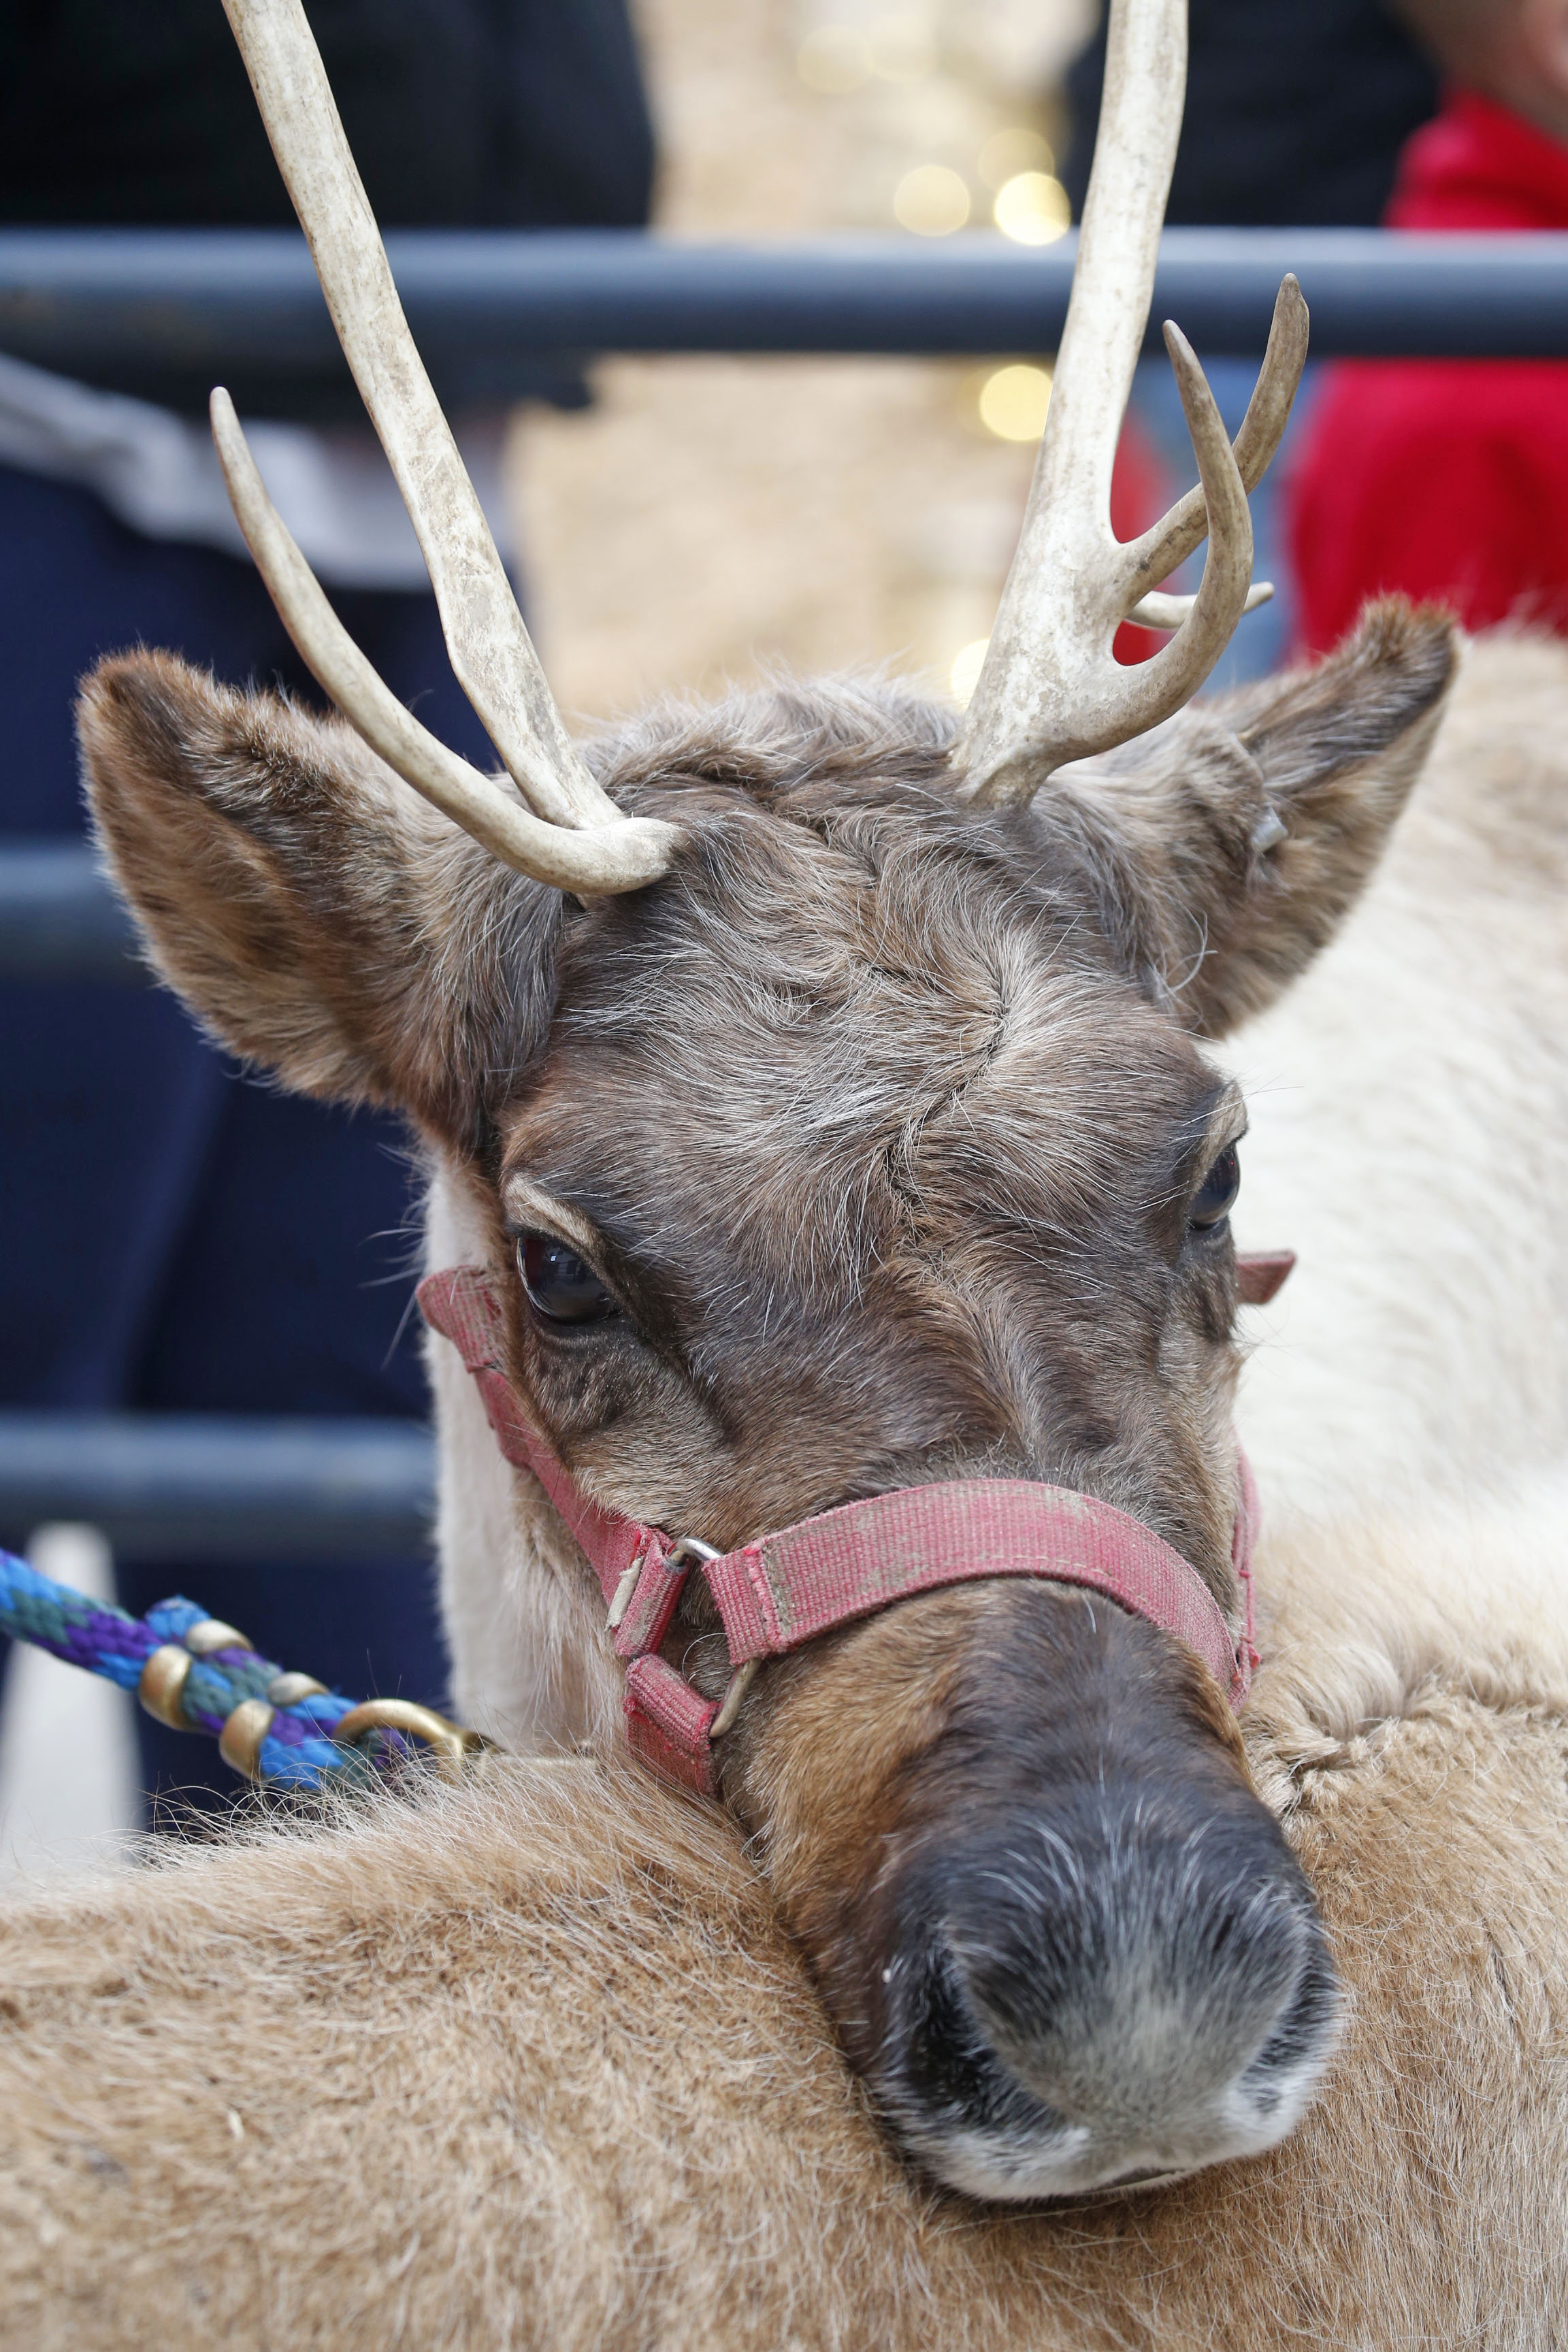 Reindeer were part of the holiday kick-off on Old Falls St. in Niagara Falls, N.Y., on Saturday, Nov. 19, 2016.  (Robert Kirkham/Buffalo News)